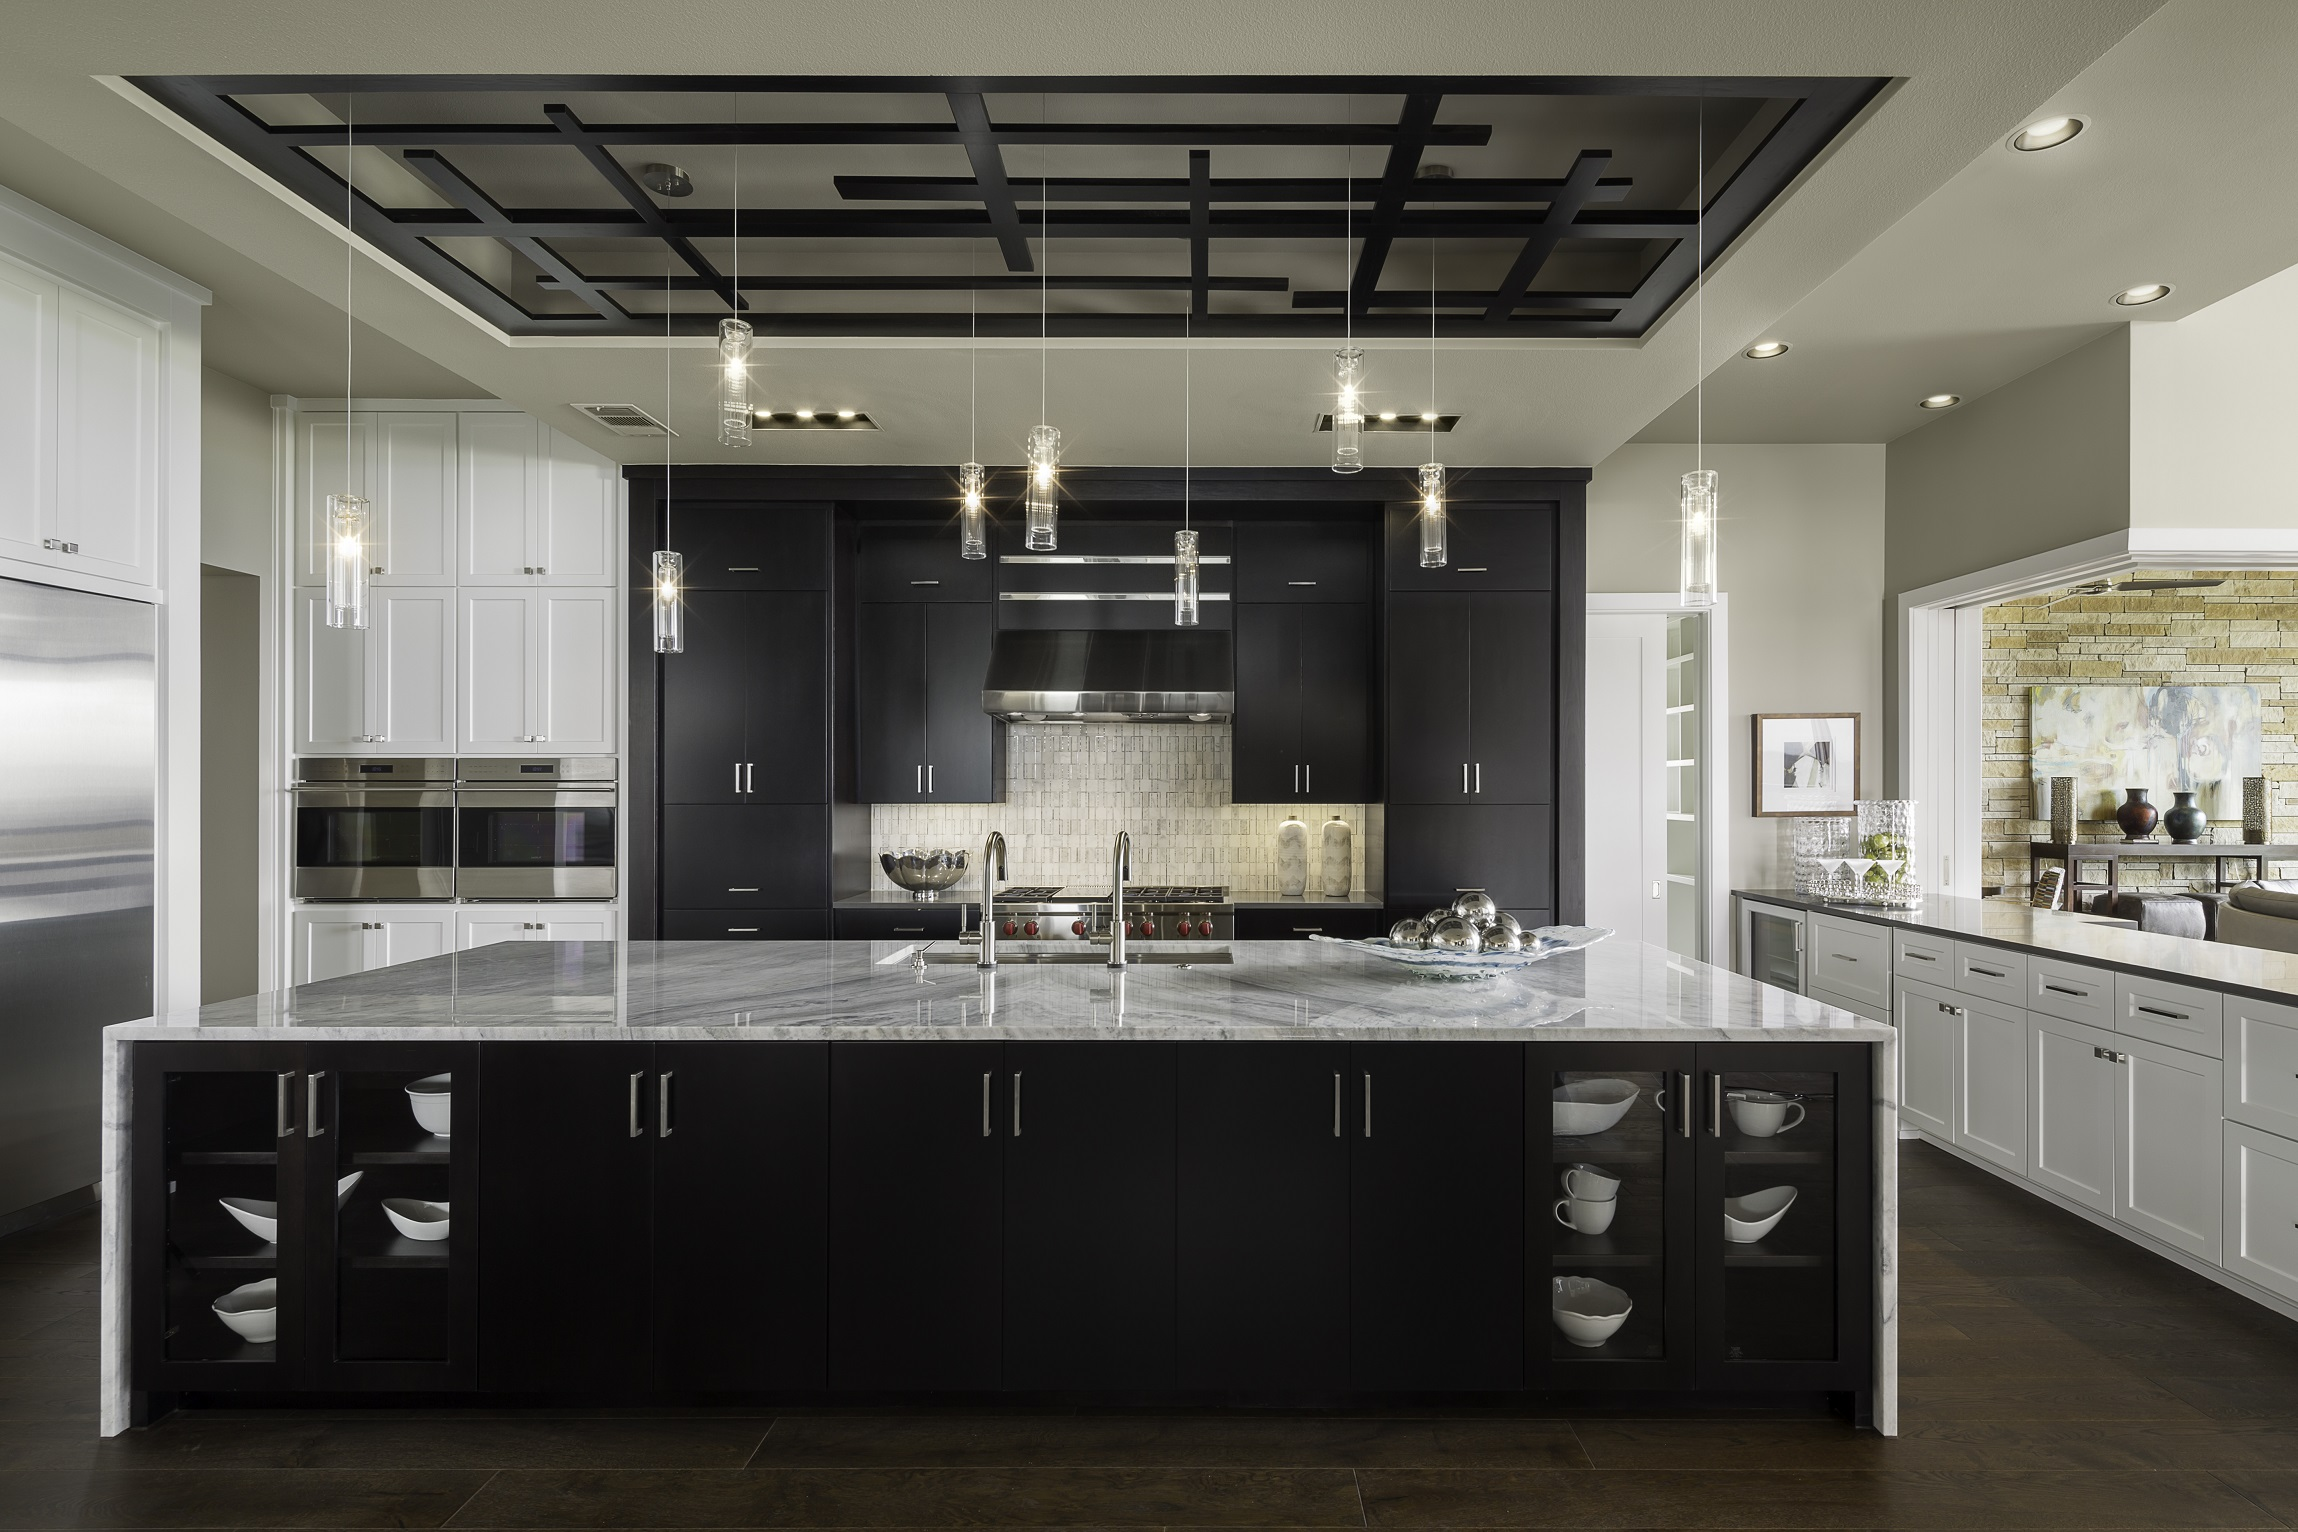 Duckhorn Residence - kitchen